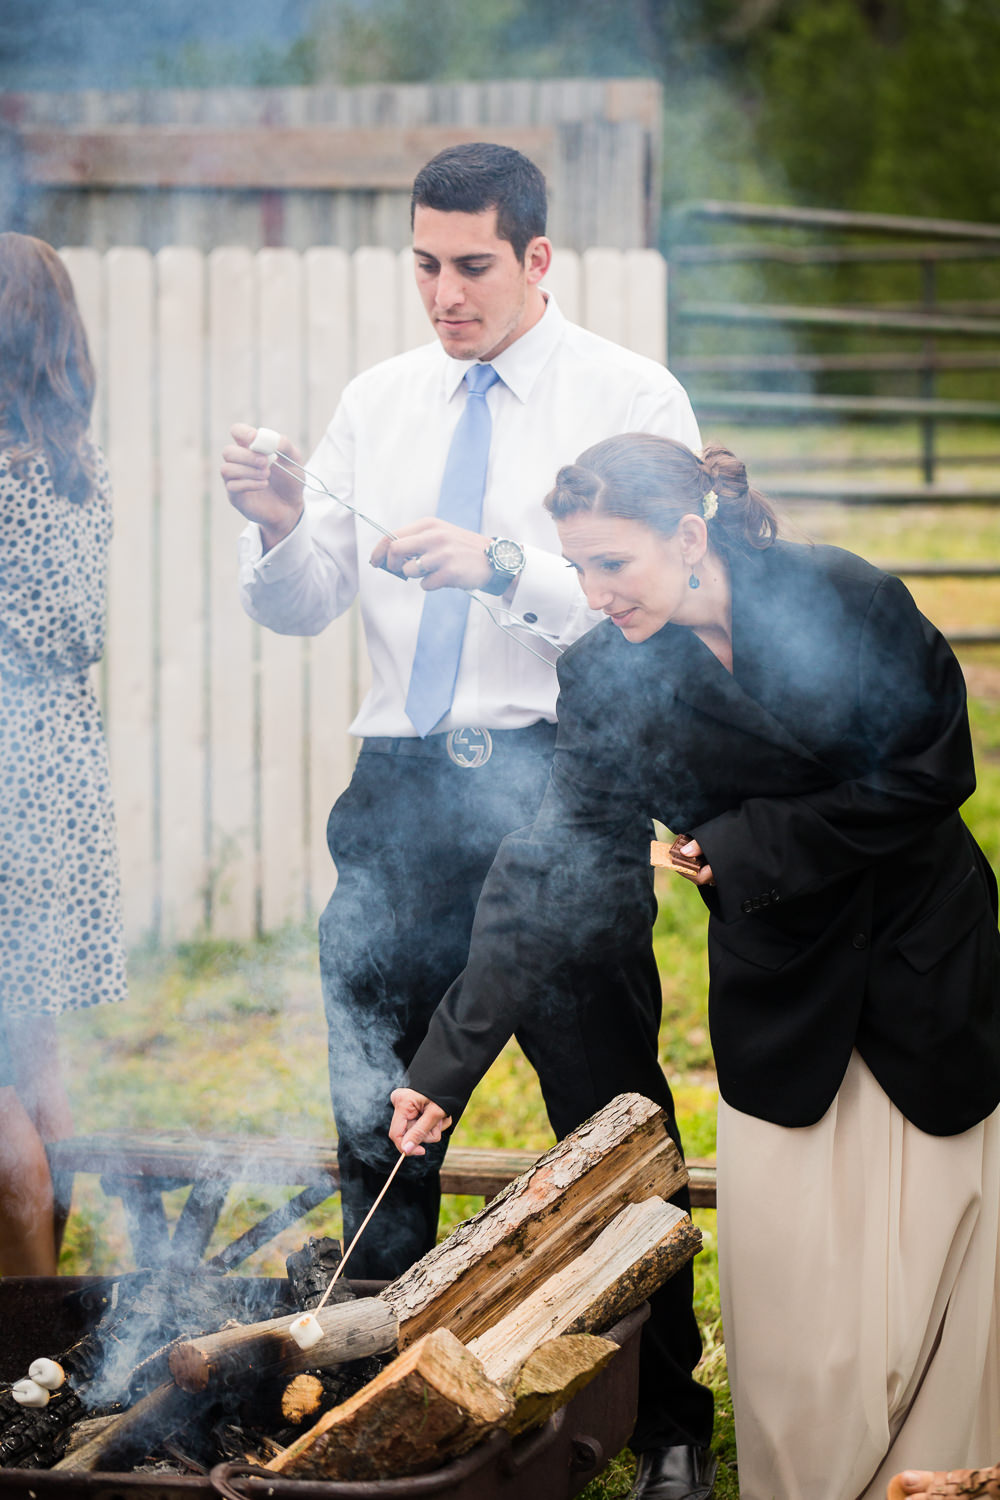 bozeman-hart-ranch-wedding-reception-guests-roasting-marshmallows.jpg